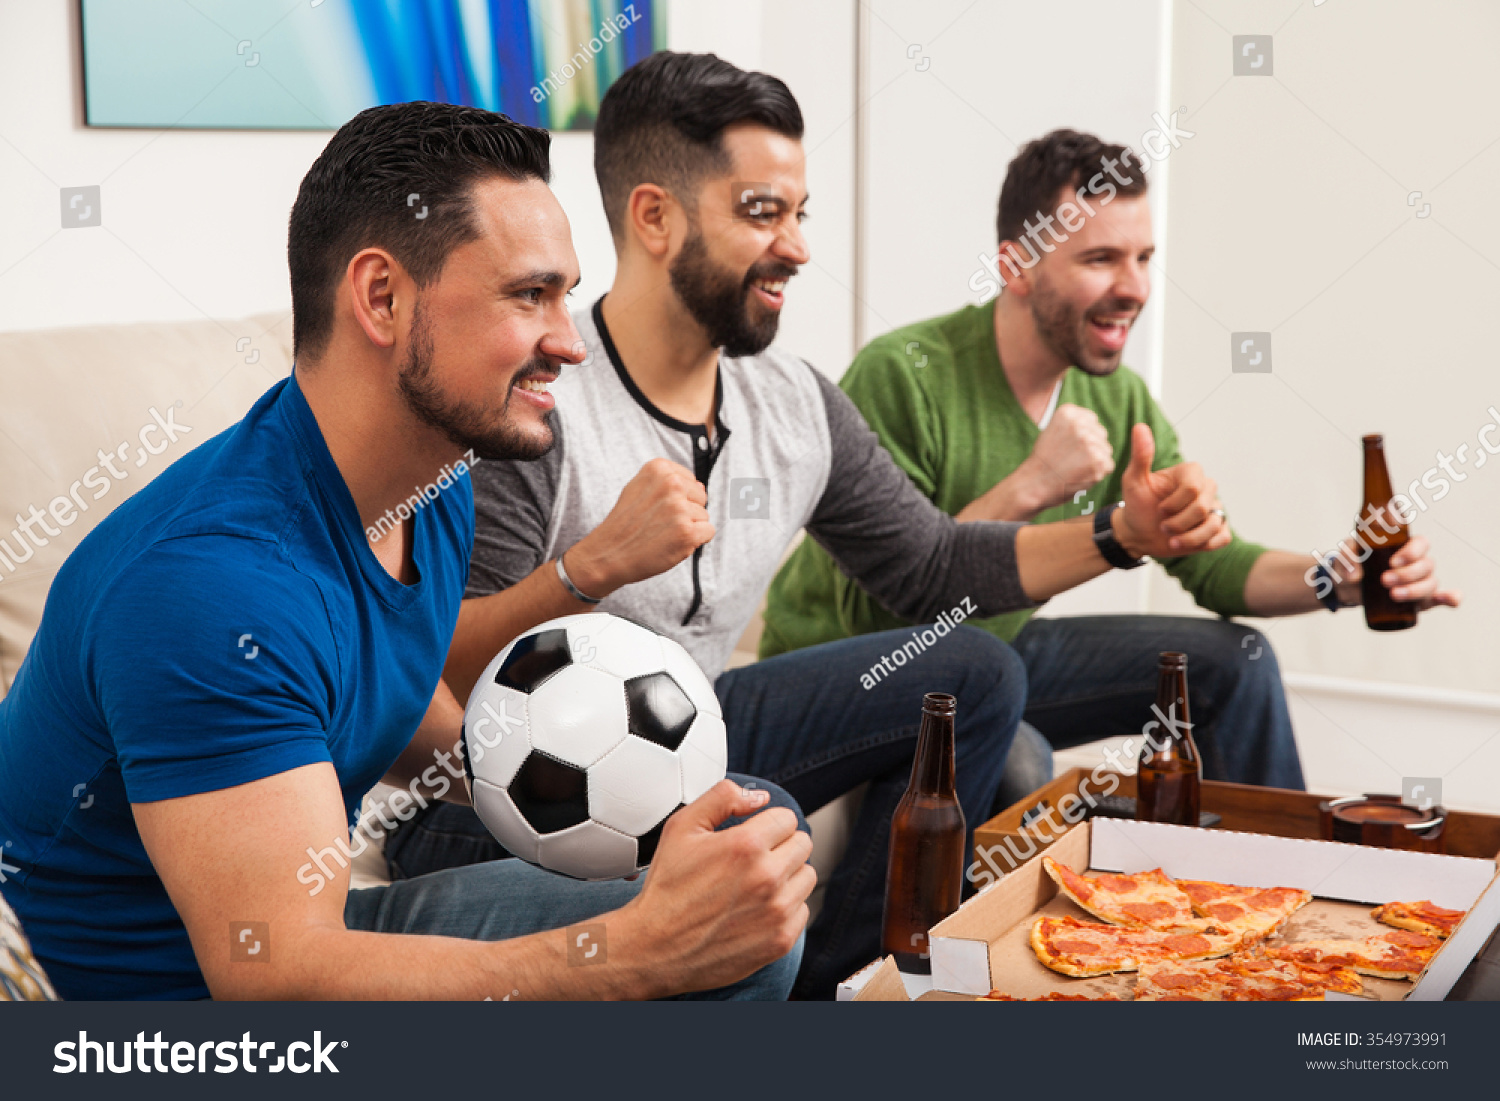 three young latin men celebrating goal stock photo 354973991 three young latin men celebrating a goal while watching a soccer game at home pizza